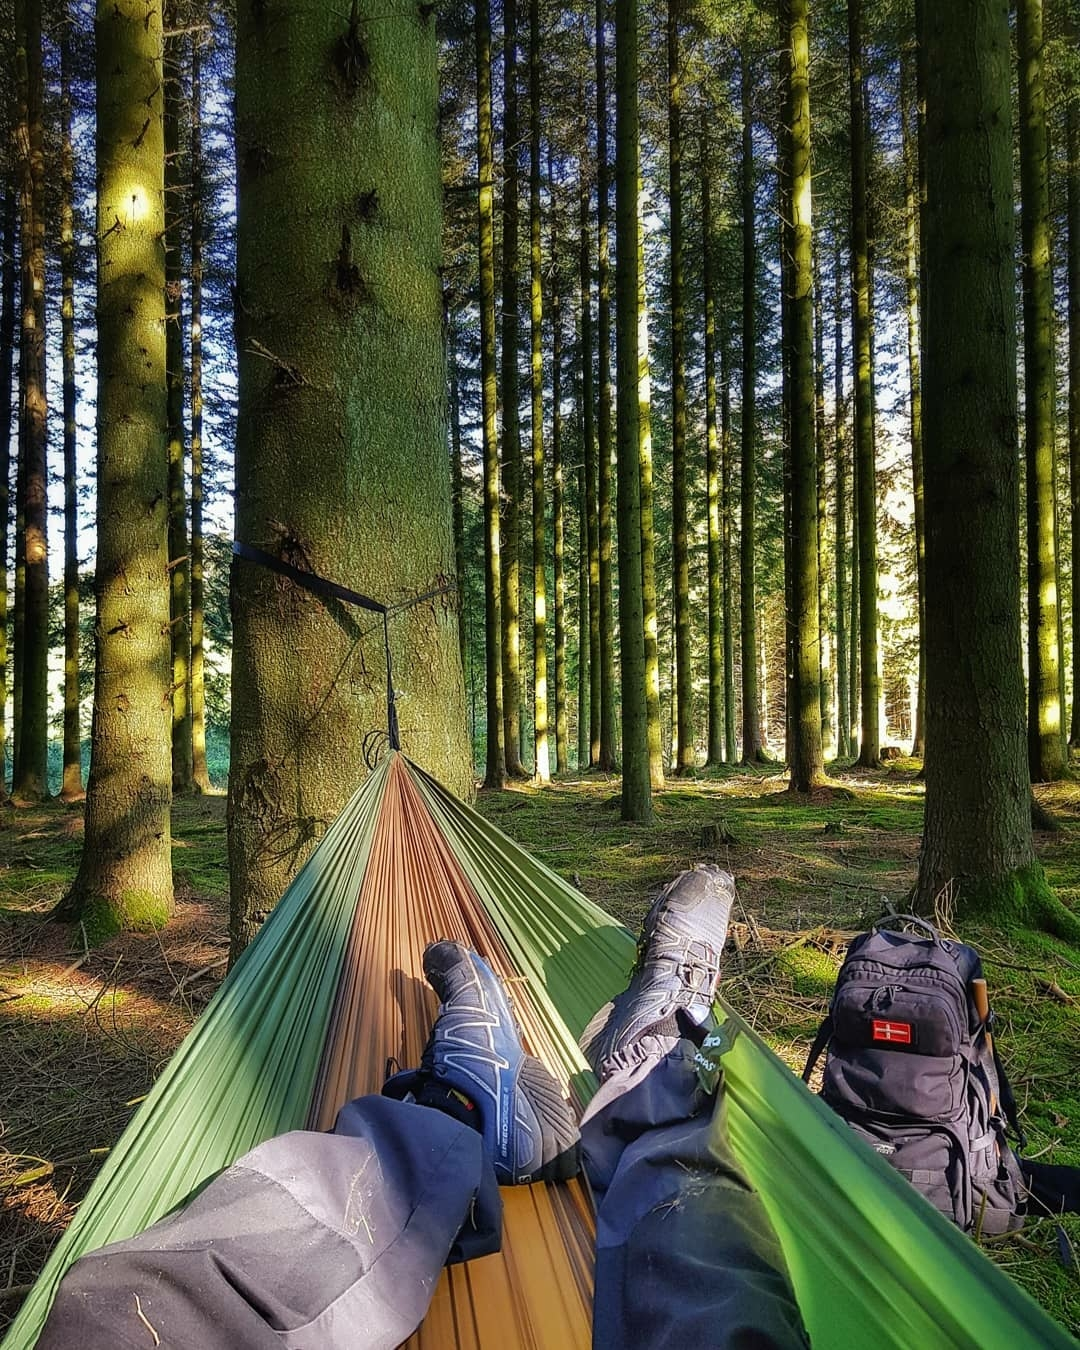 the manly life - man relaxing on hammock in forest